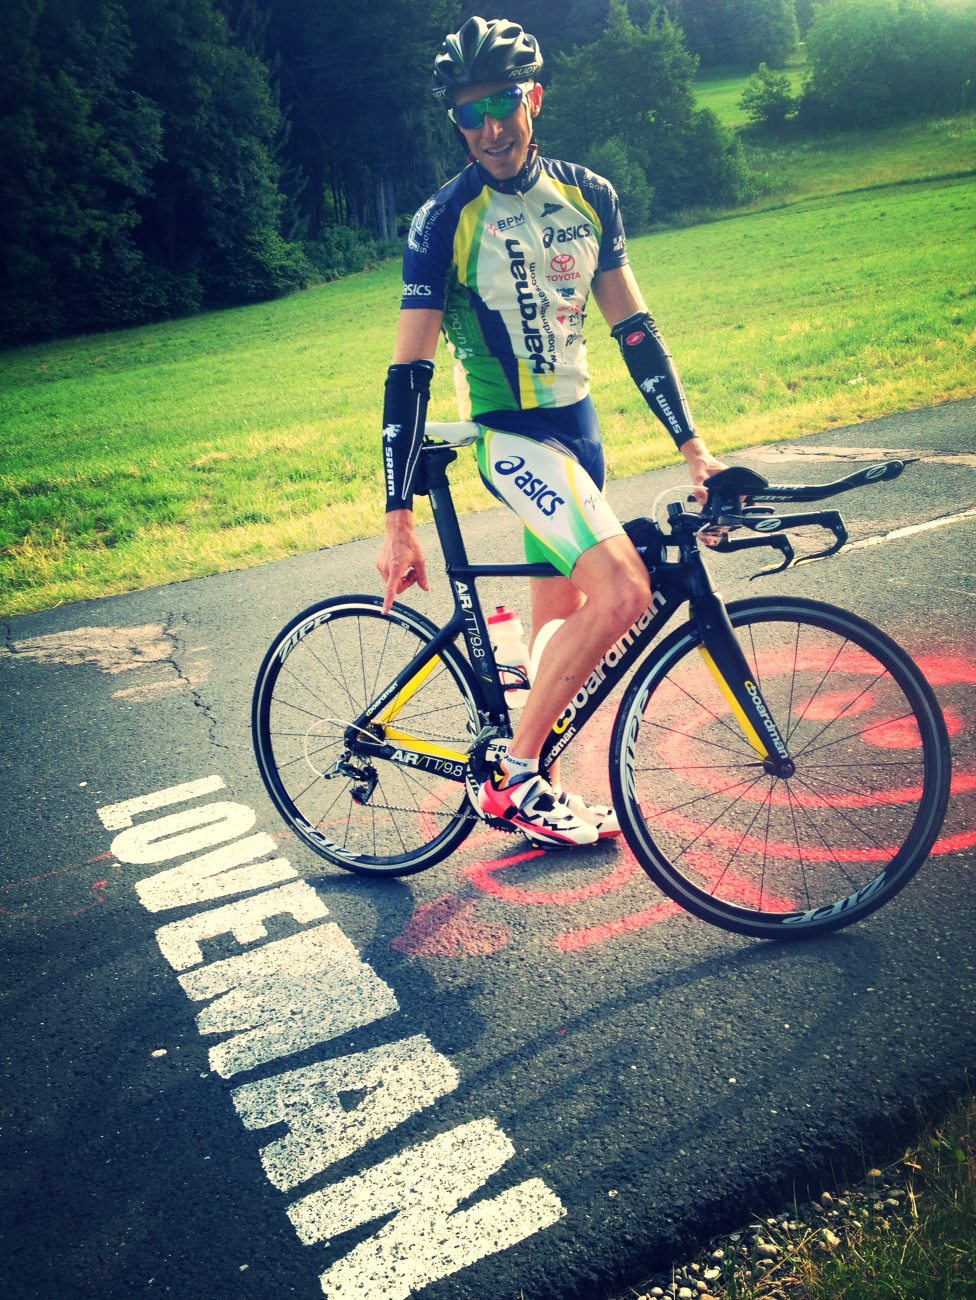 Pete Jacobs found a bit of inspiration on the Ironman Austria course last week